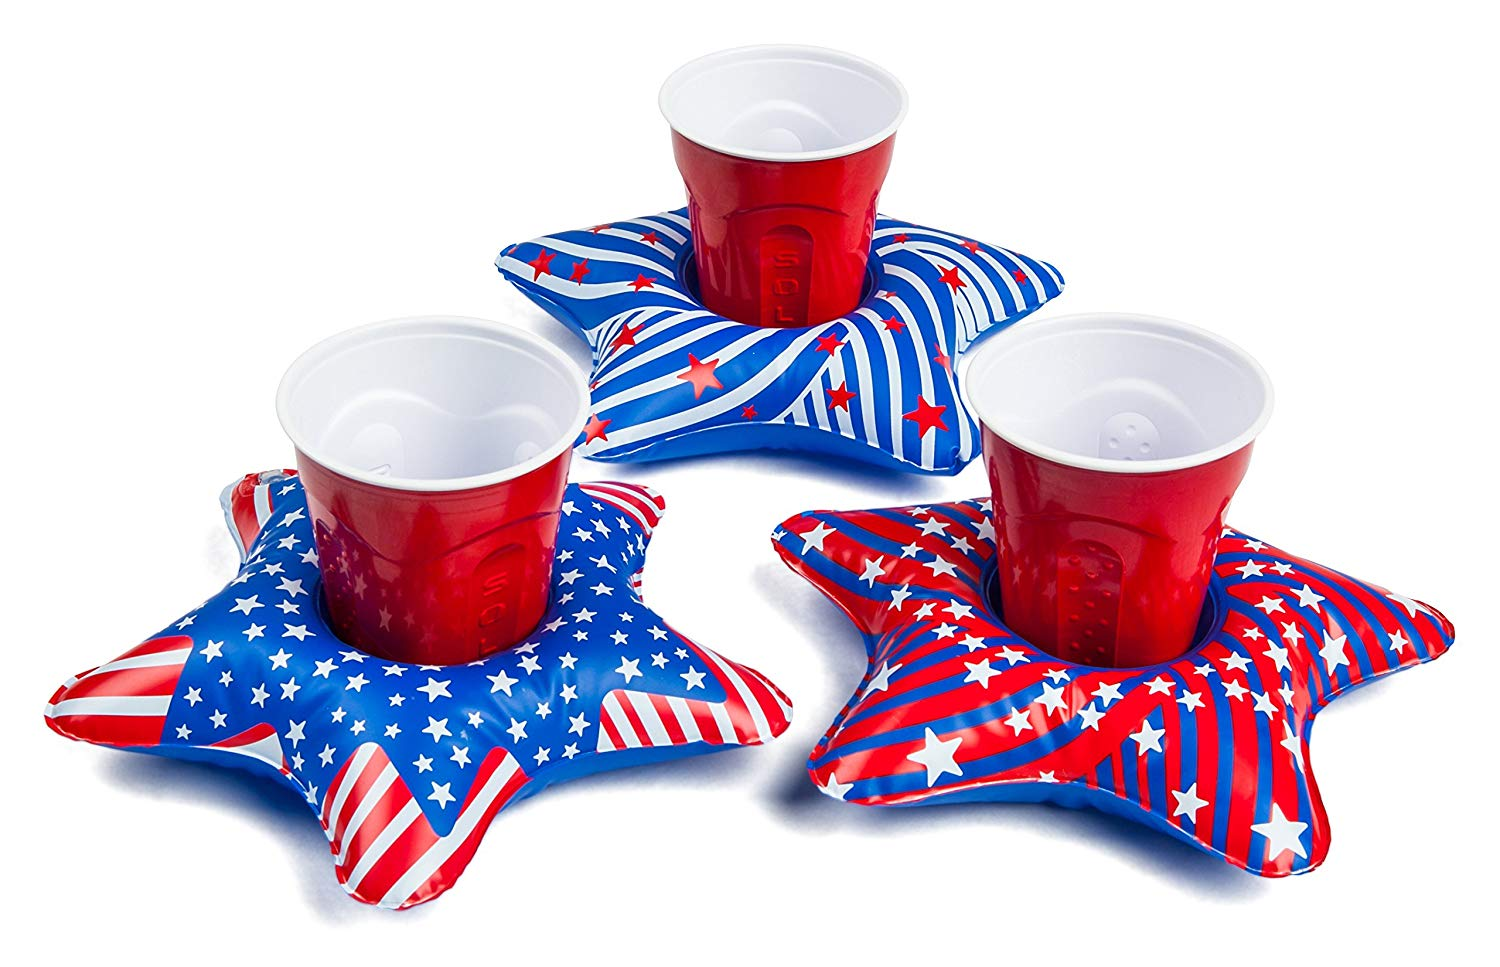 Fourth of July Red, White & Blue Accessories | Inflatable Star Drink Holders